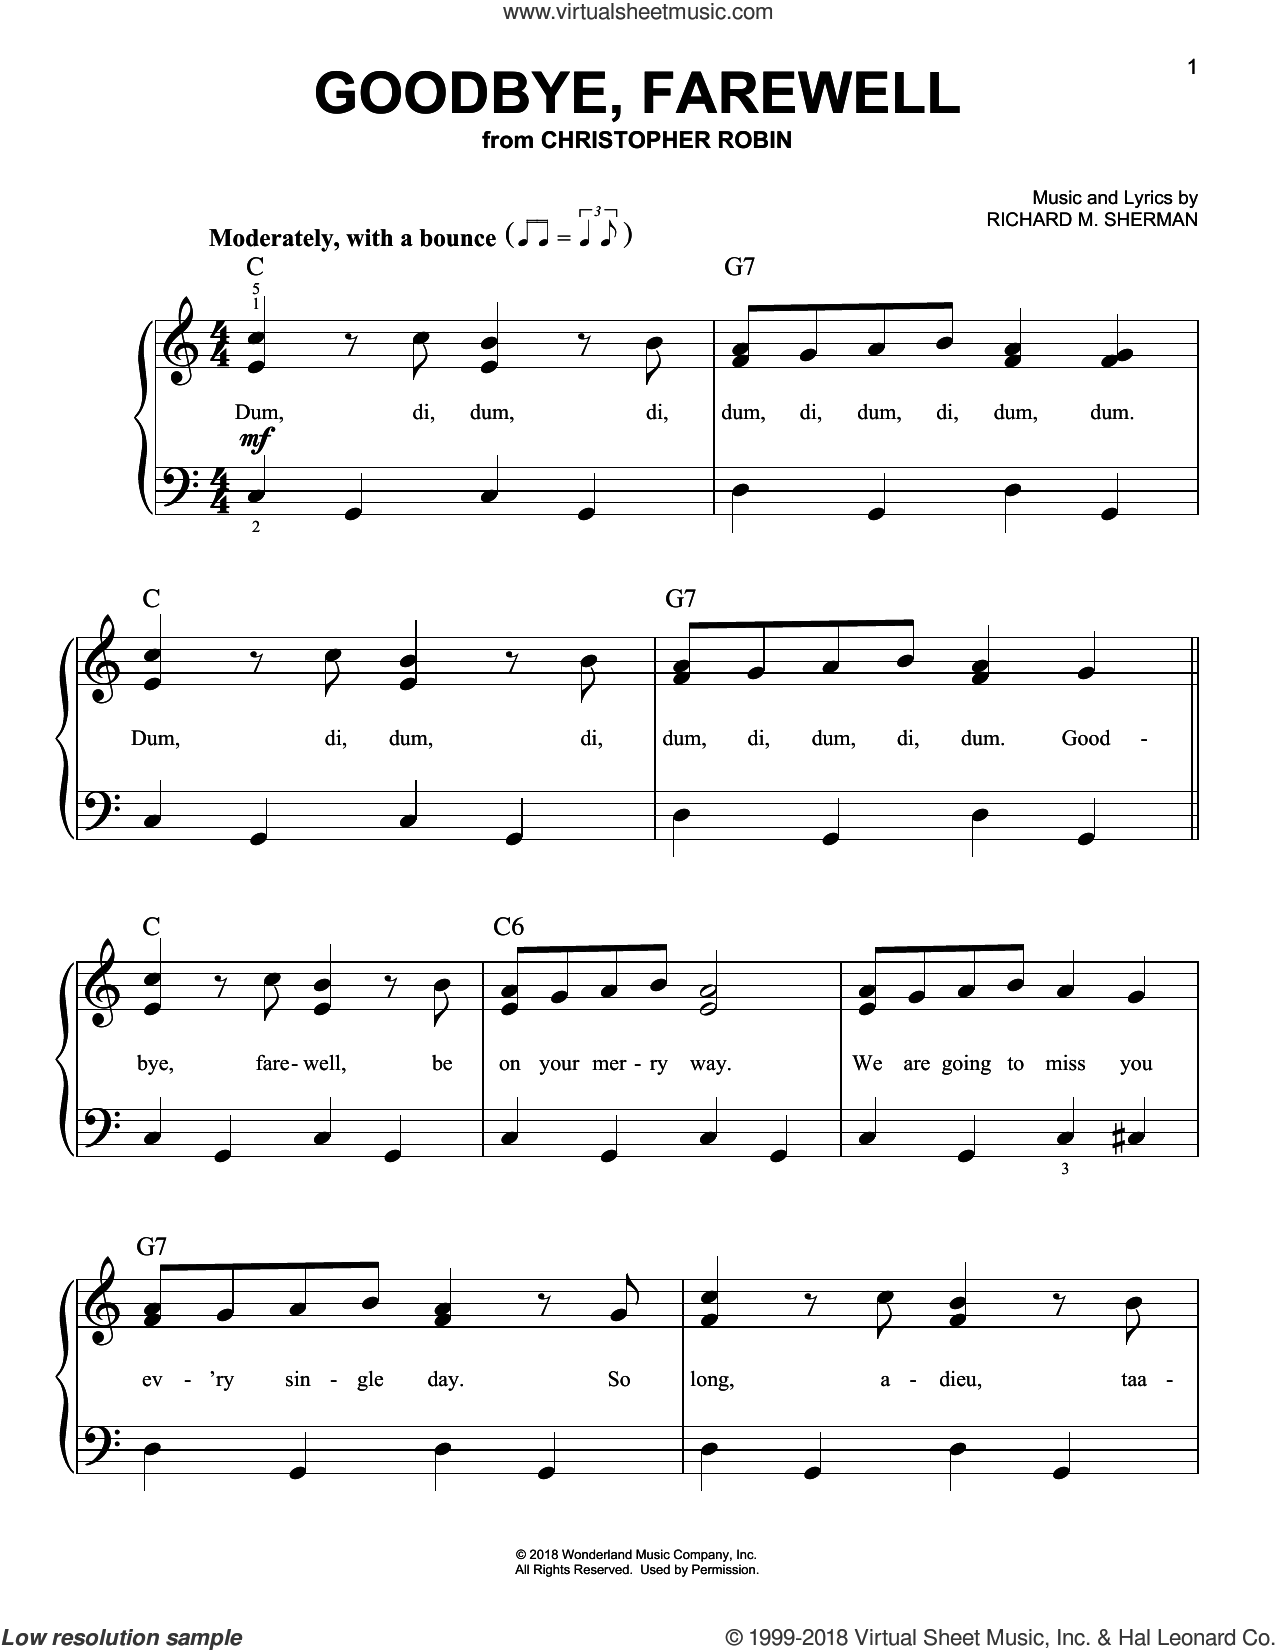 Goodbye, Farewell (from Christopher Robin) sheet music for piano solo by Geoff Zanelli & Jon Brion, Geoff Zanelli and Jon Brion, easy skill level